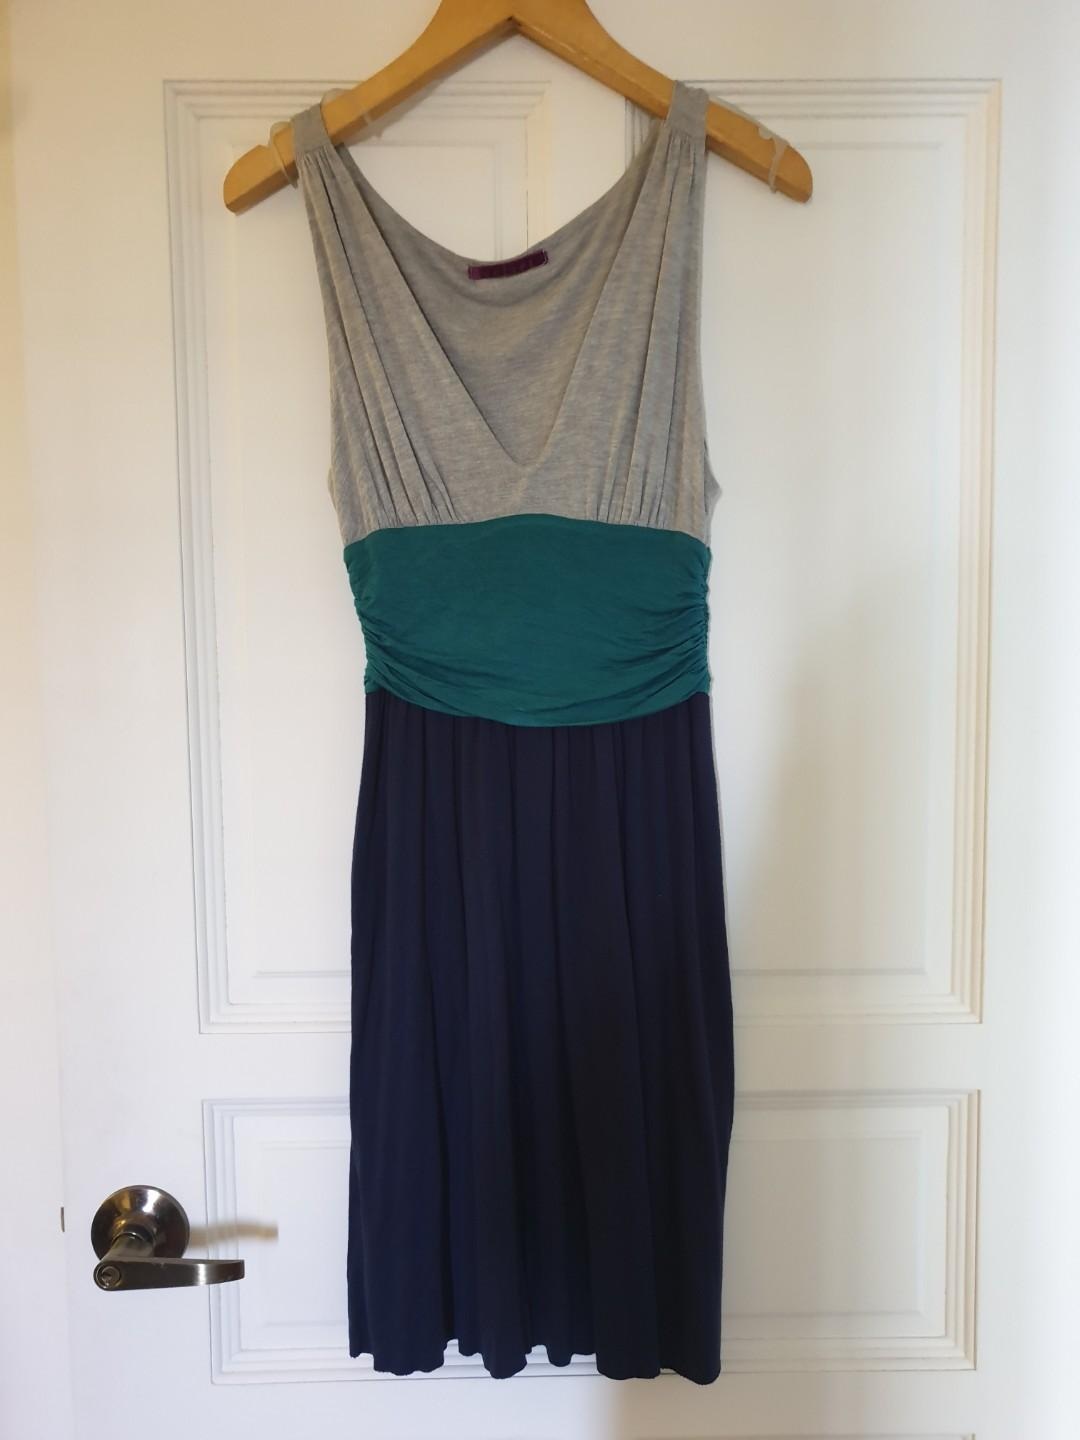 Anthropologie velvet brand jersey dress